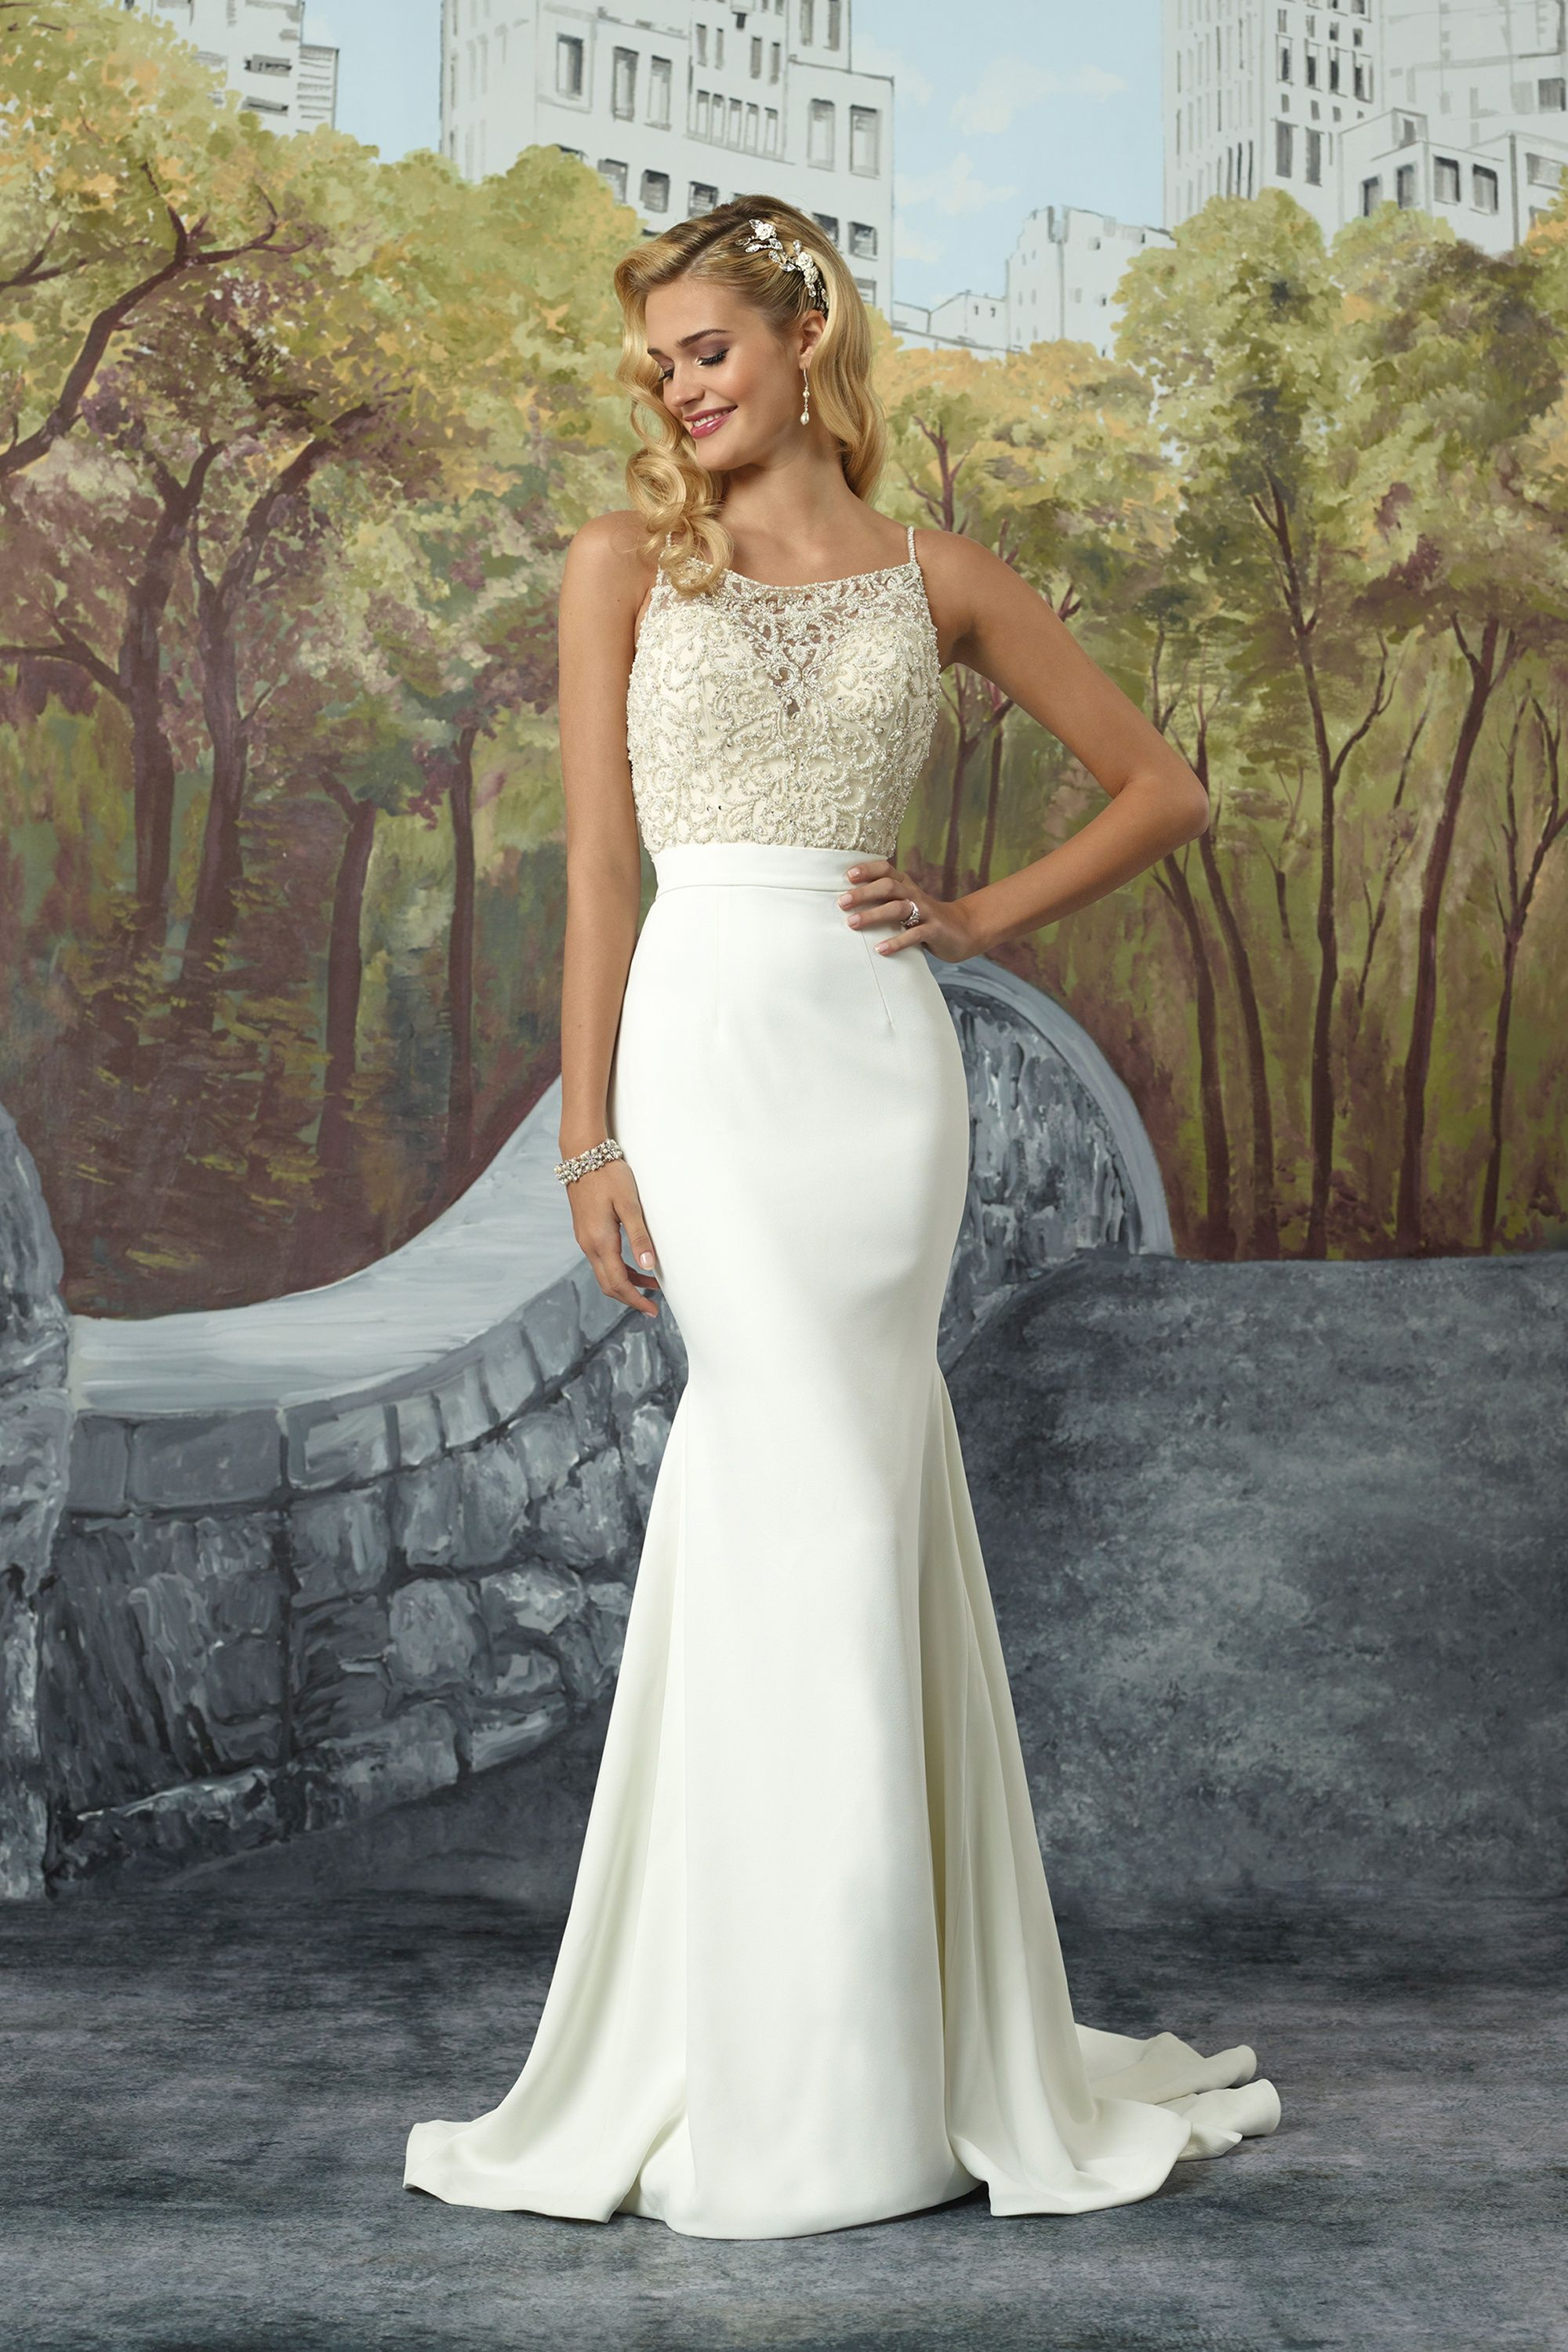 cd97d7fdd040 Crepe Fit and Flare Gown with Square Neckline Beaded Bodice